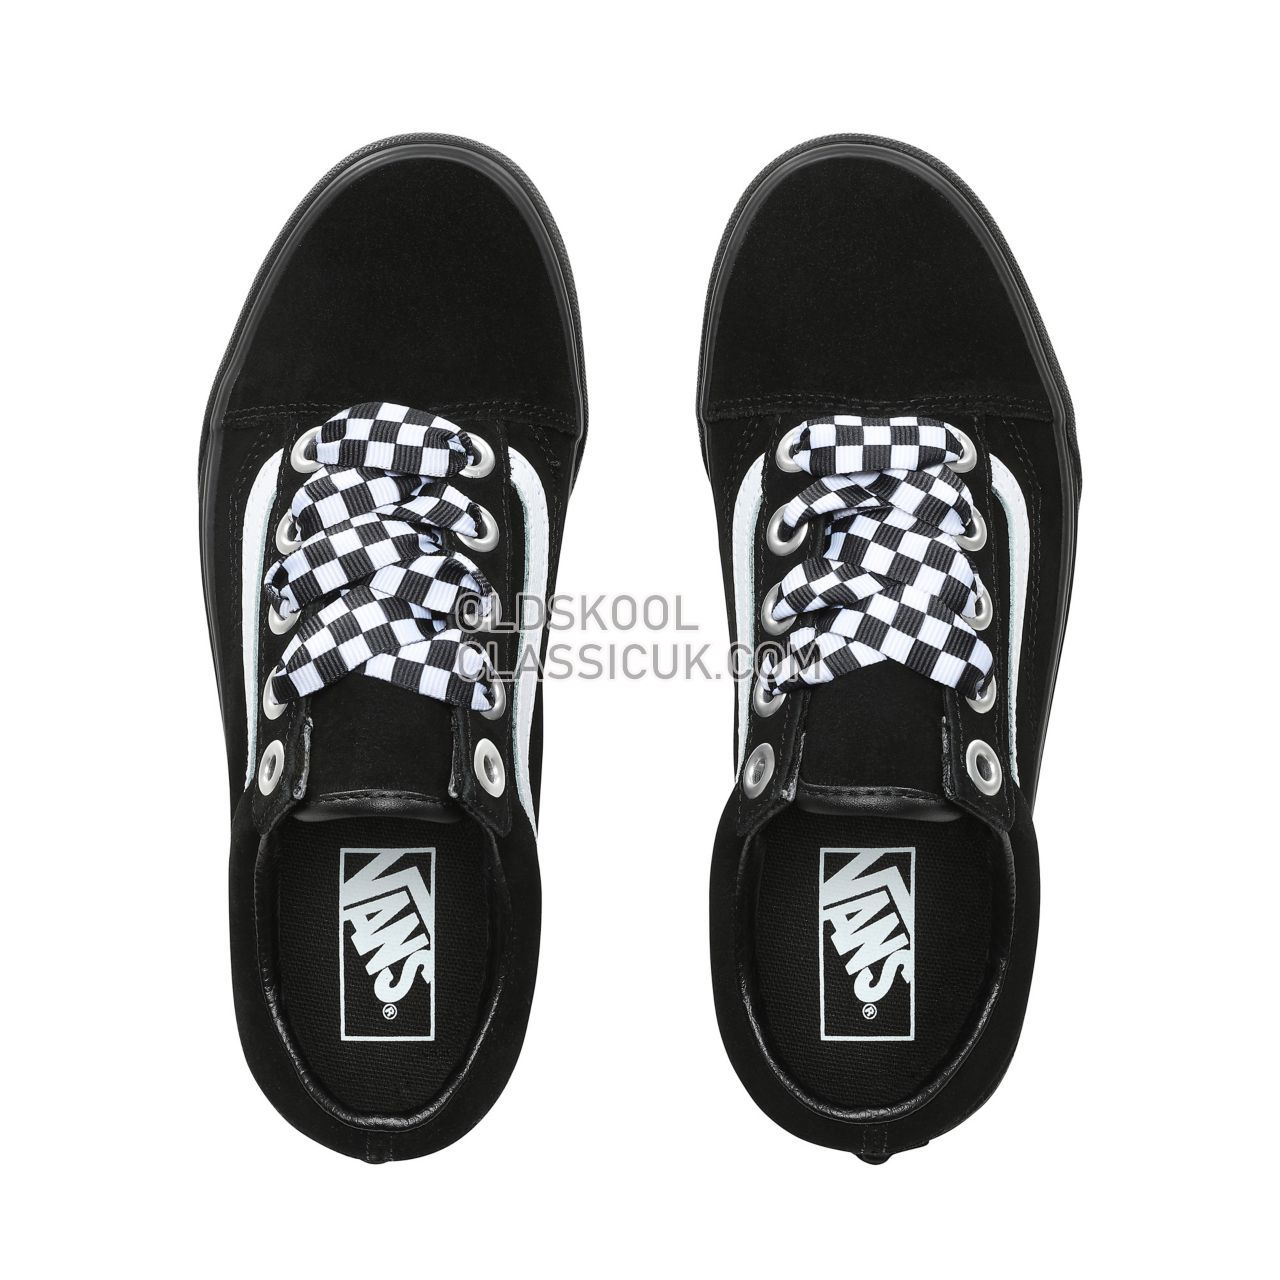 Vans Check Lace Old Skool Sneakers Womens (Check Lace) Black/Black VN0A38G1VR1 Shoes